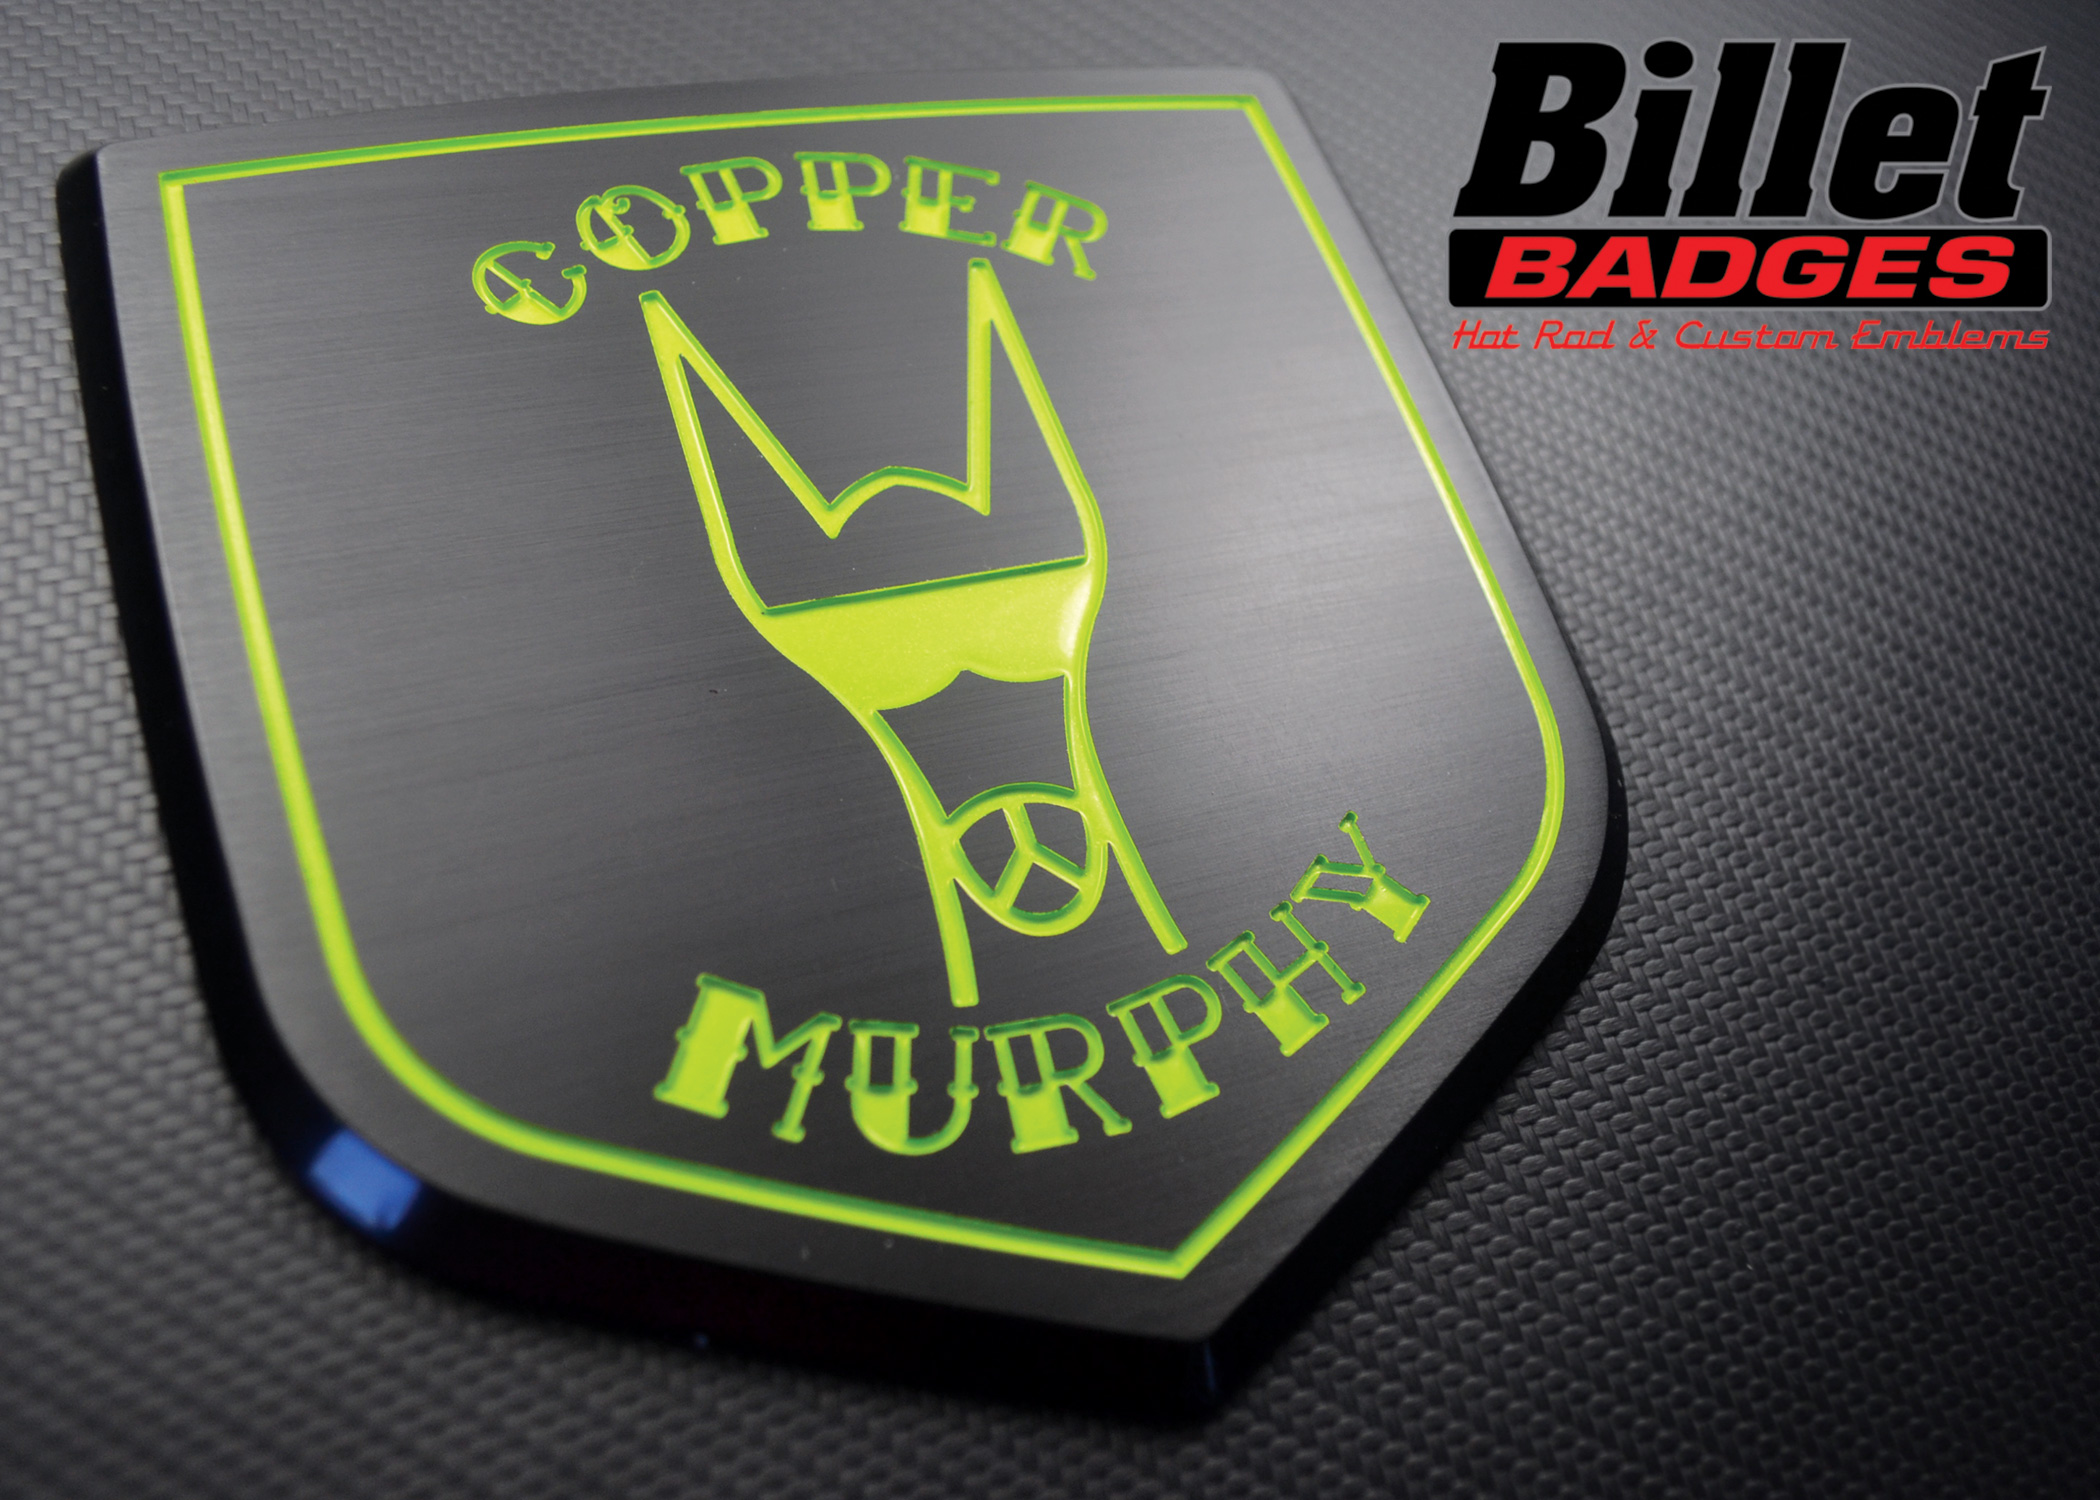 copper_murphy_shield.jpg